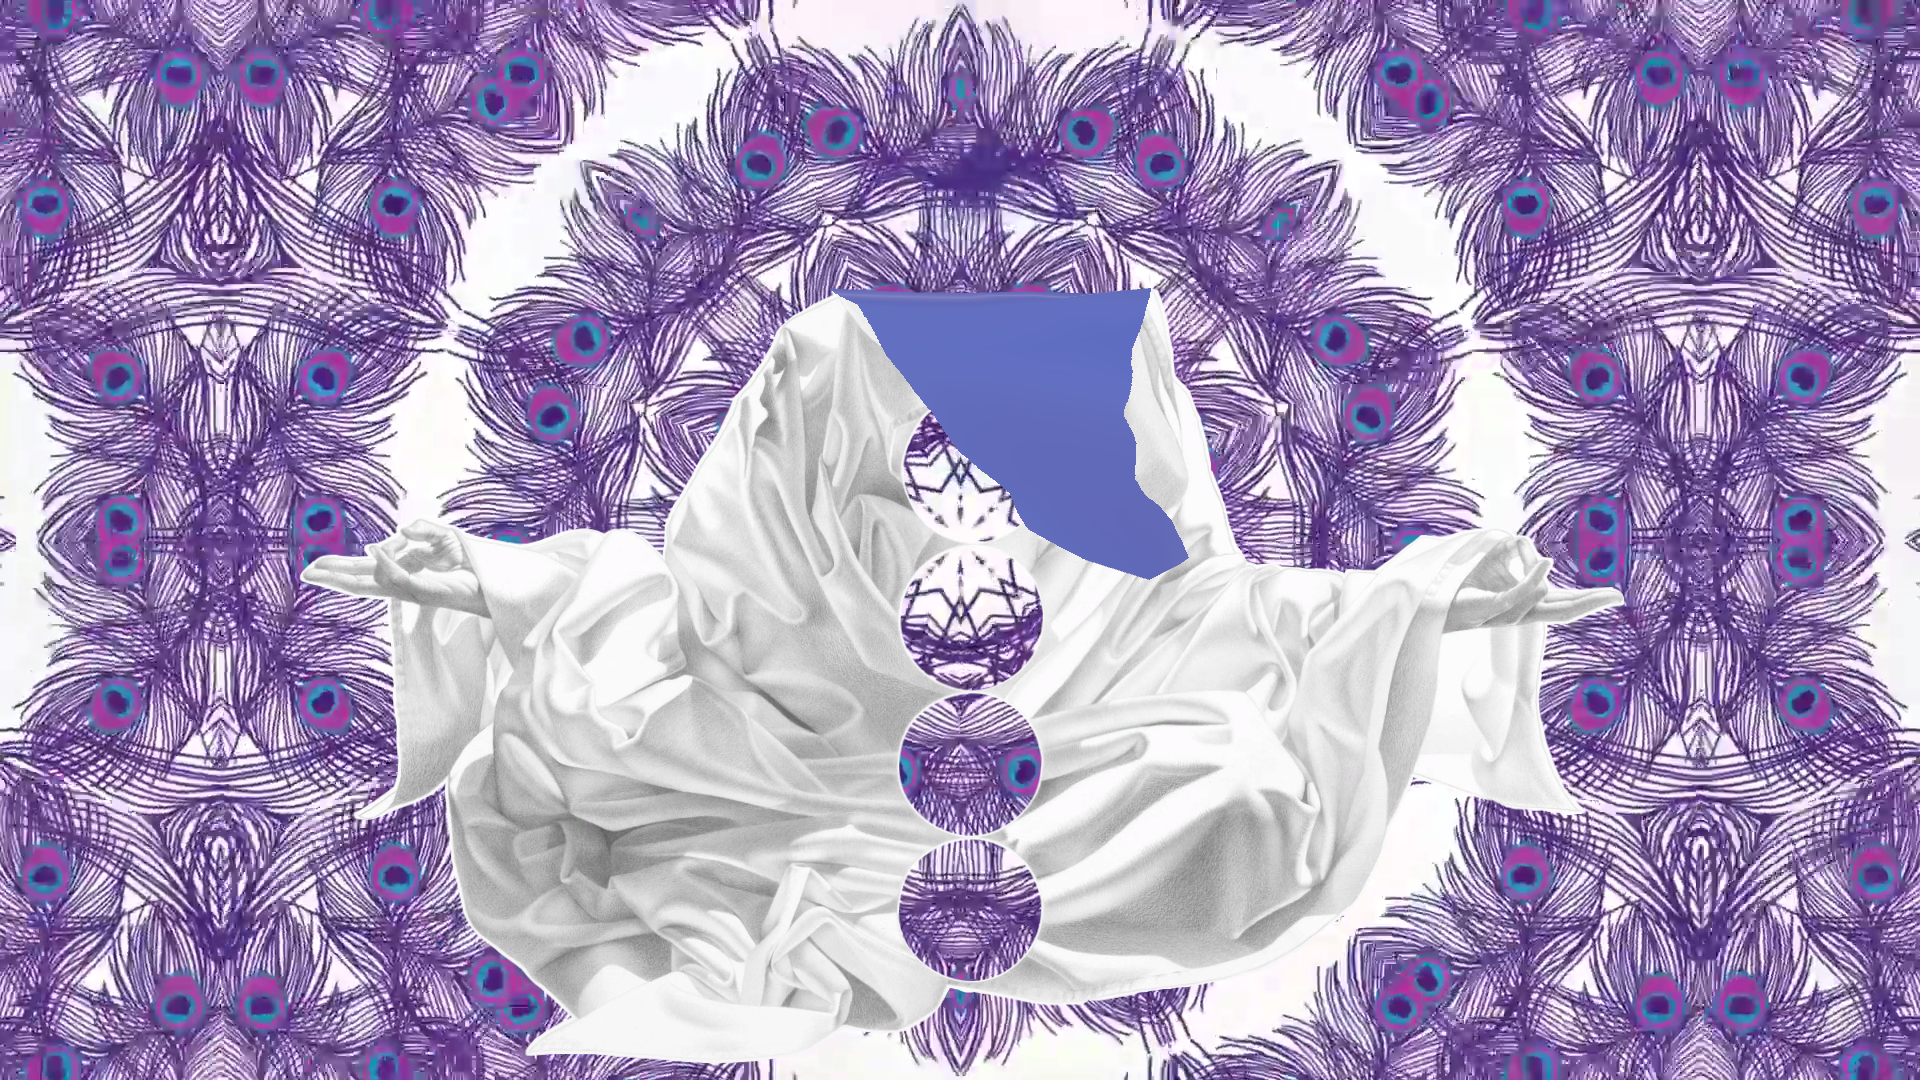 Digital animation art created by Constance Edwards Scopelitis, feauted is the purple chakra